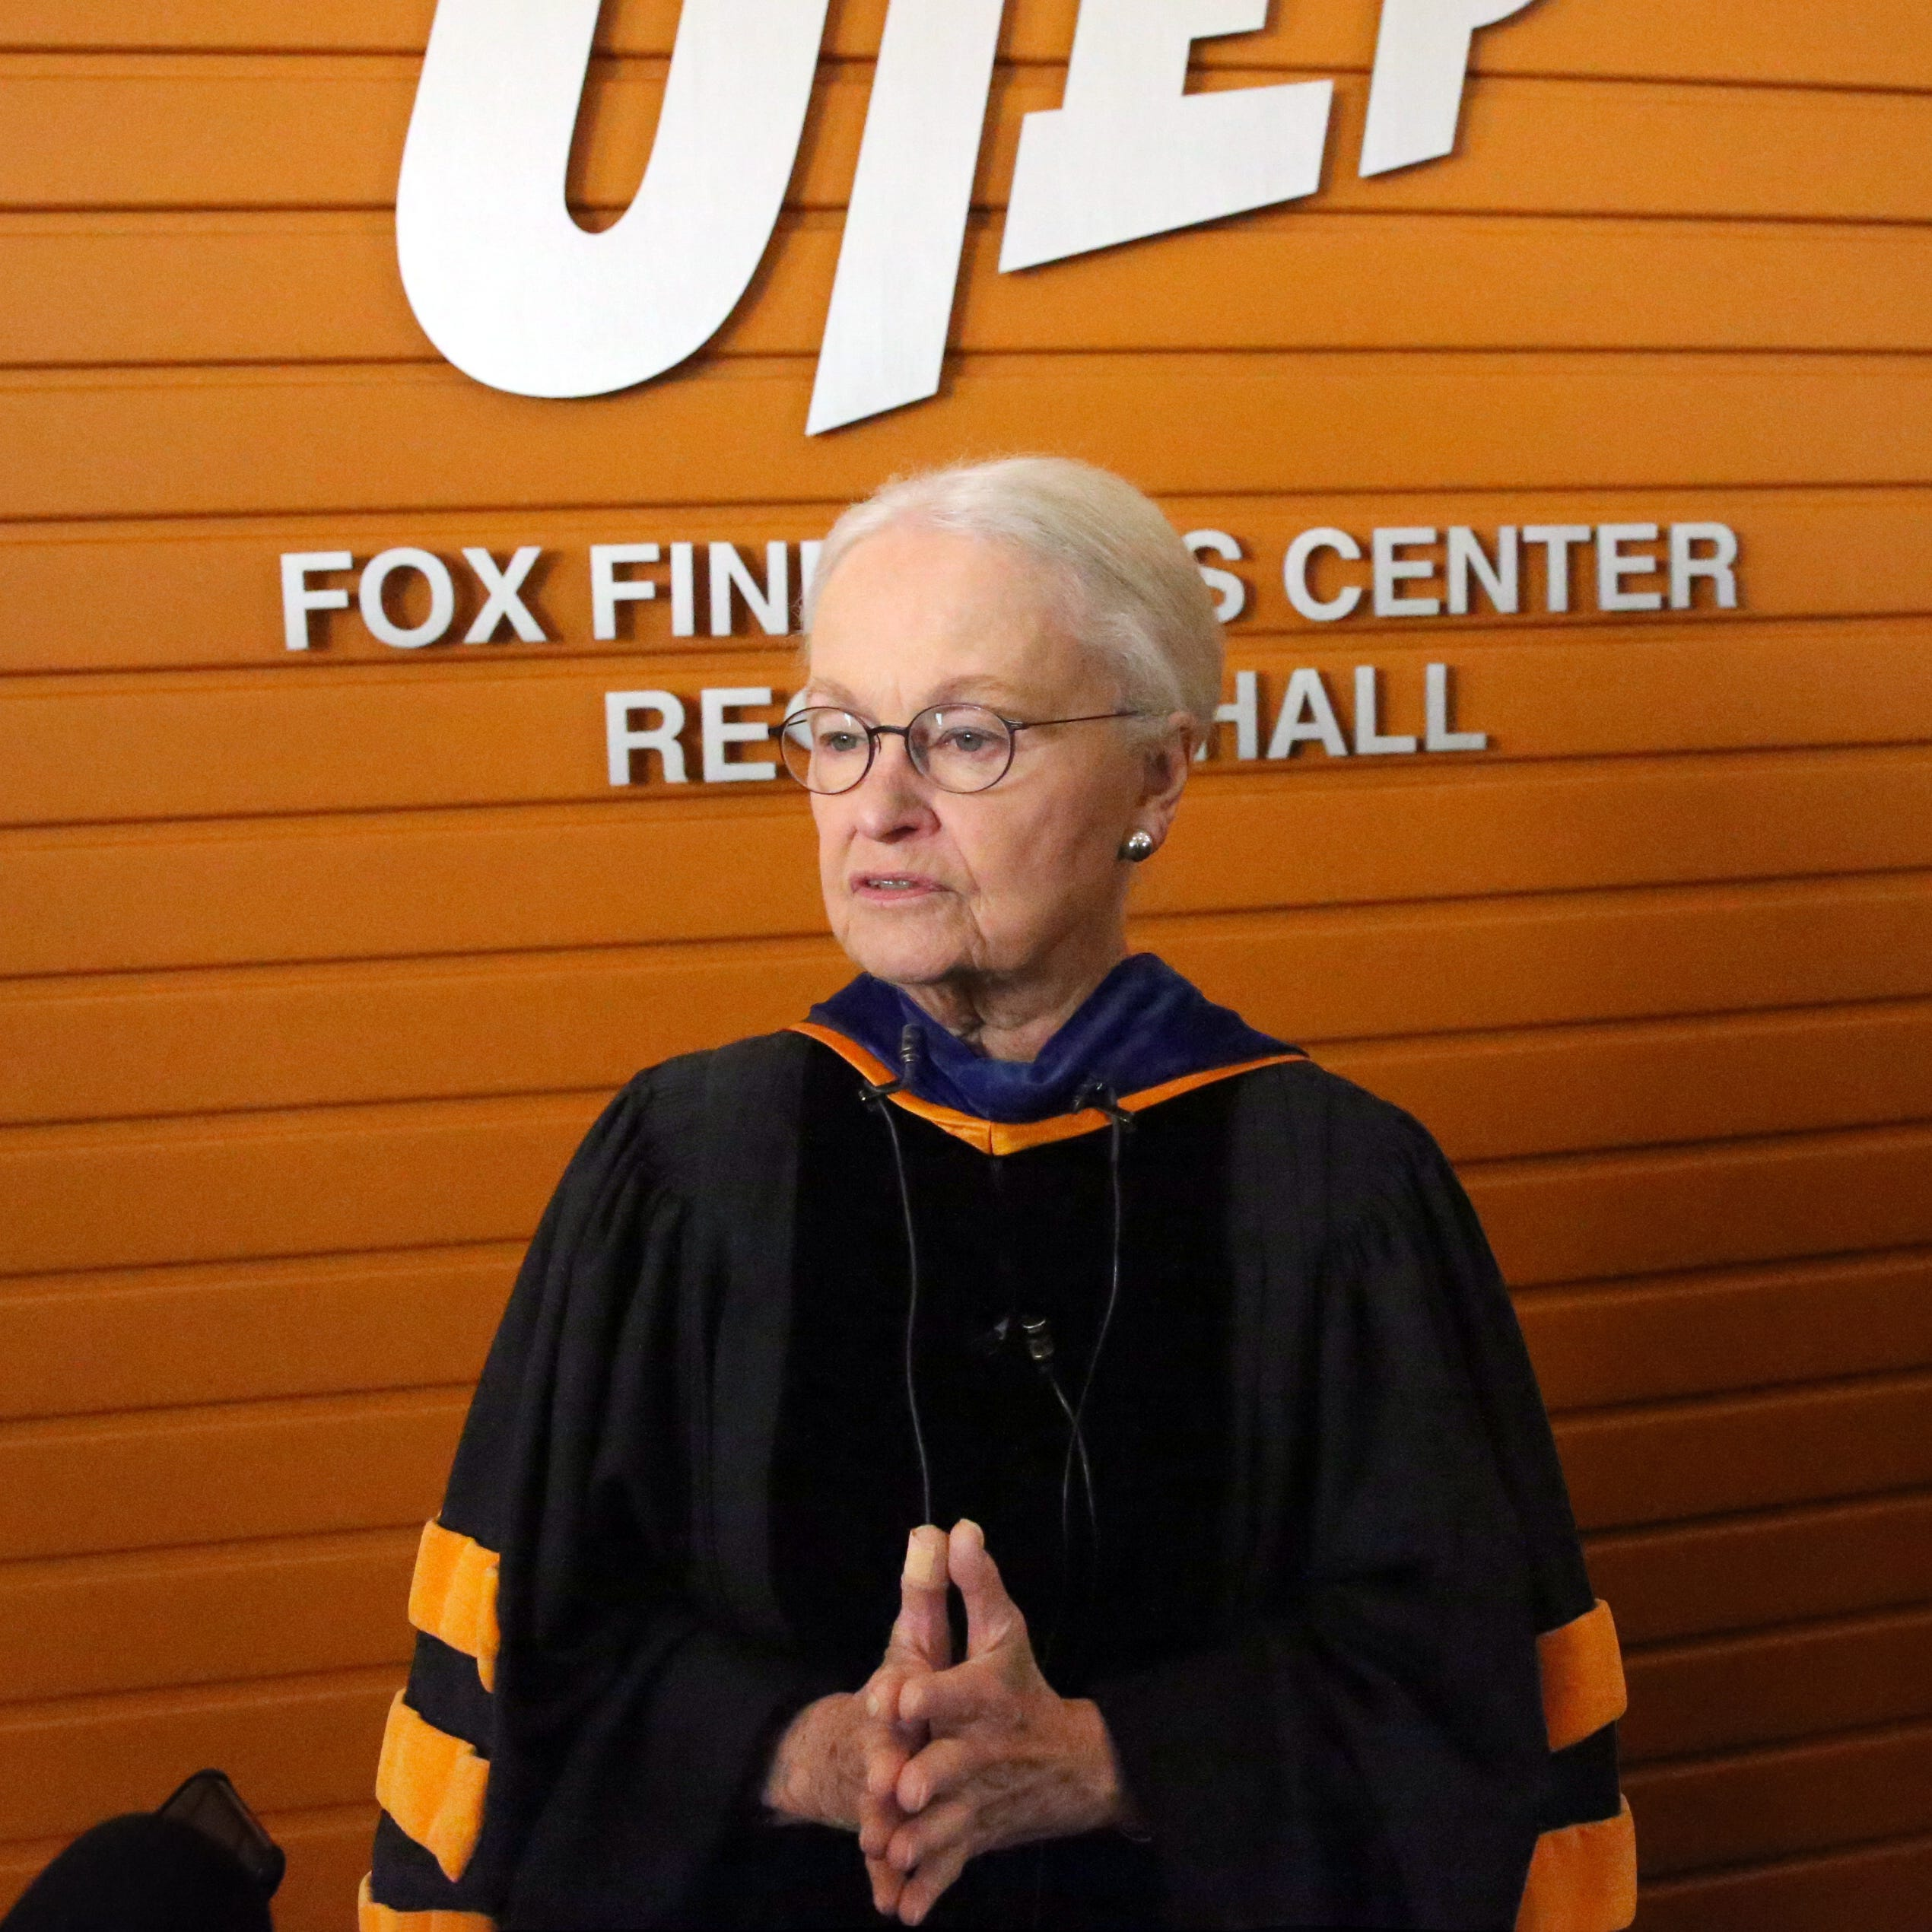 New UTEP president could be named Monday by UT System regents